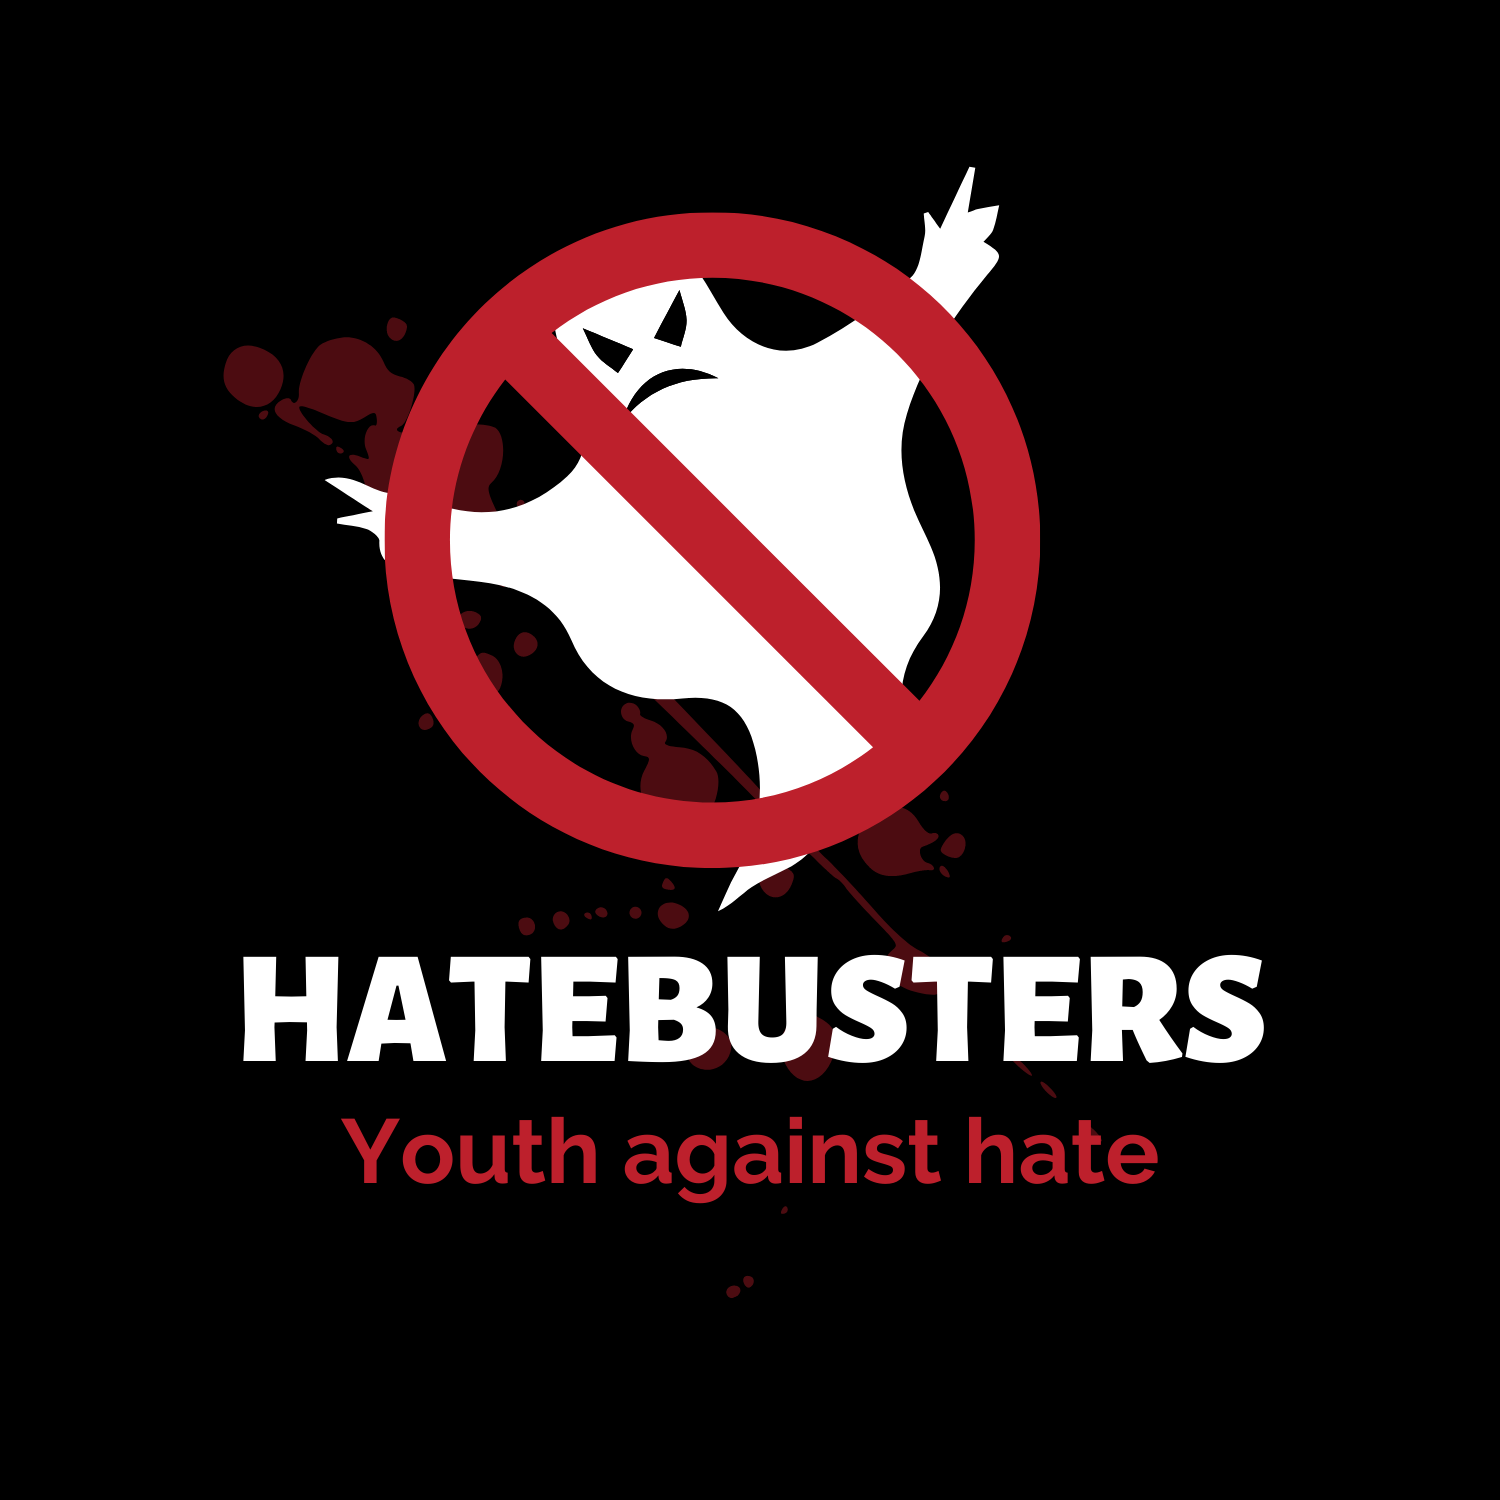 Hatebusters